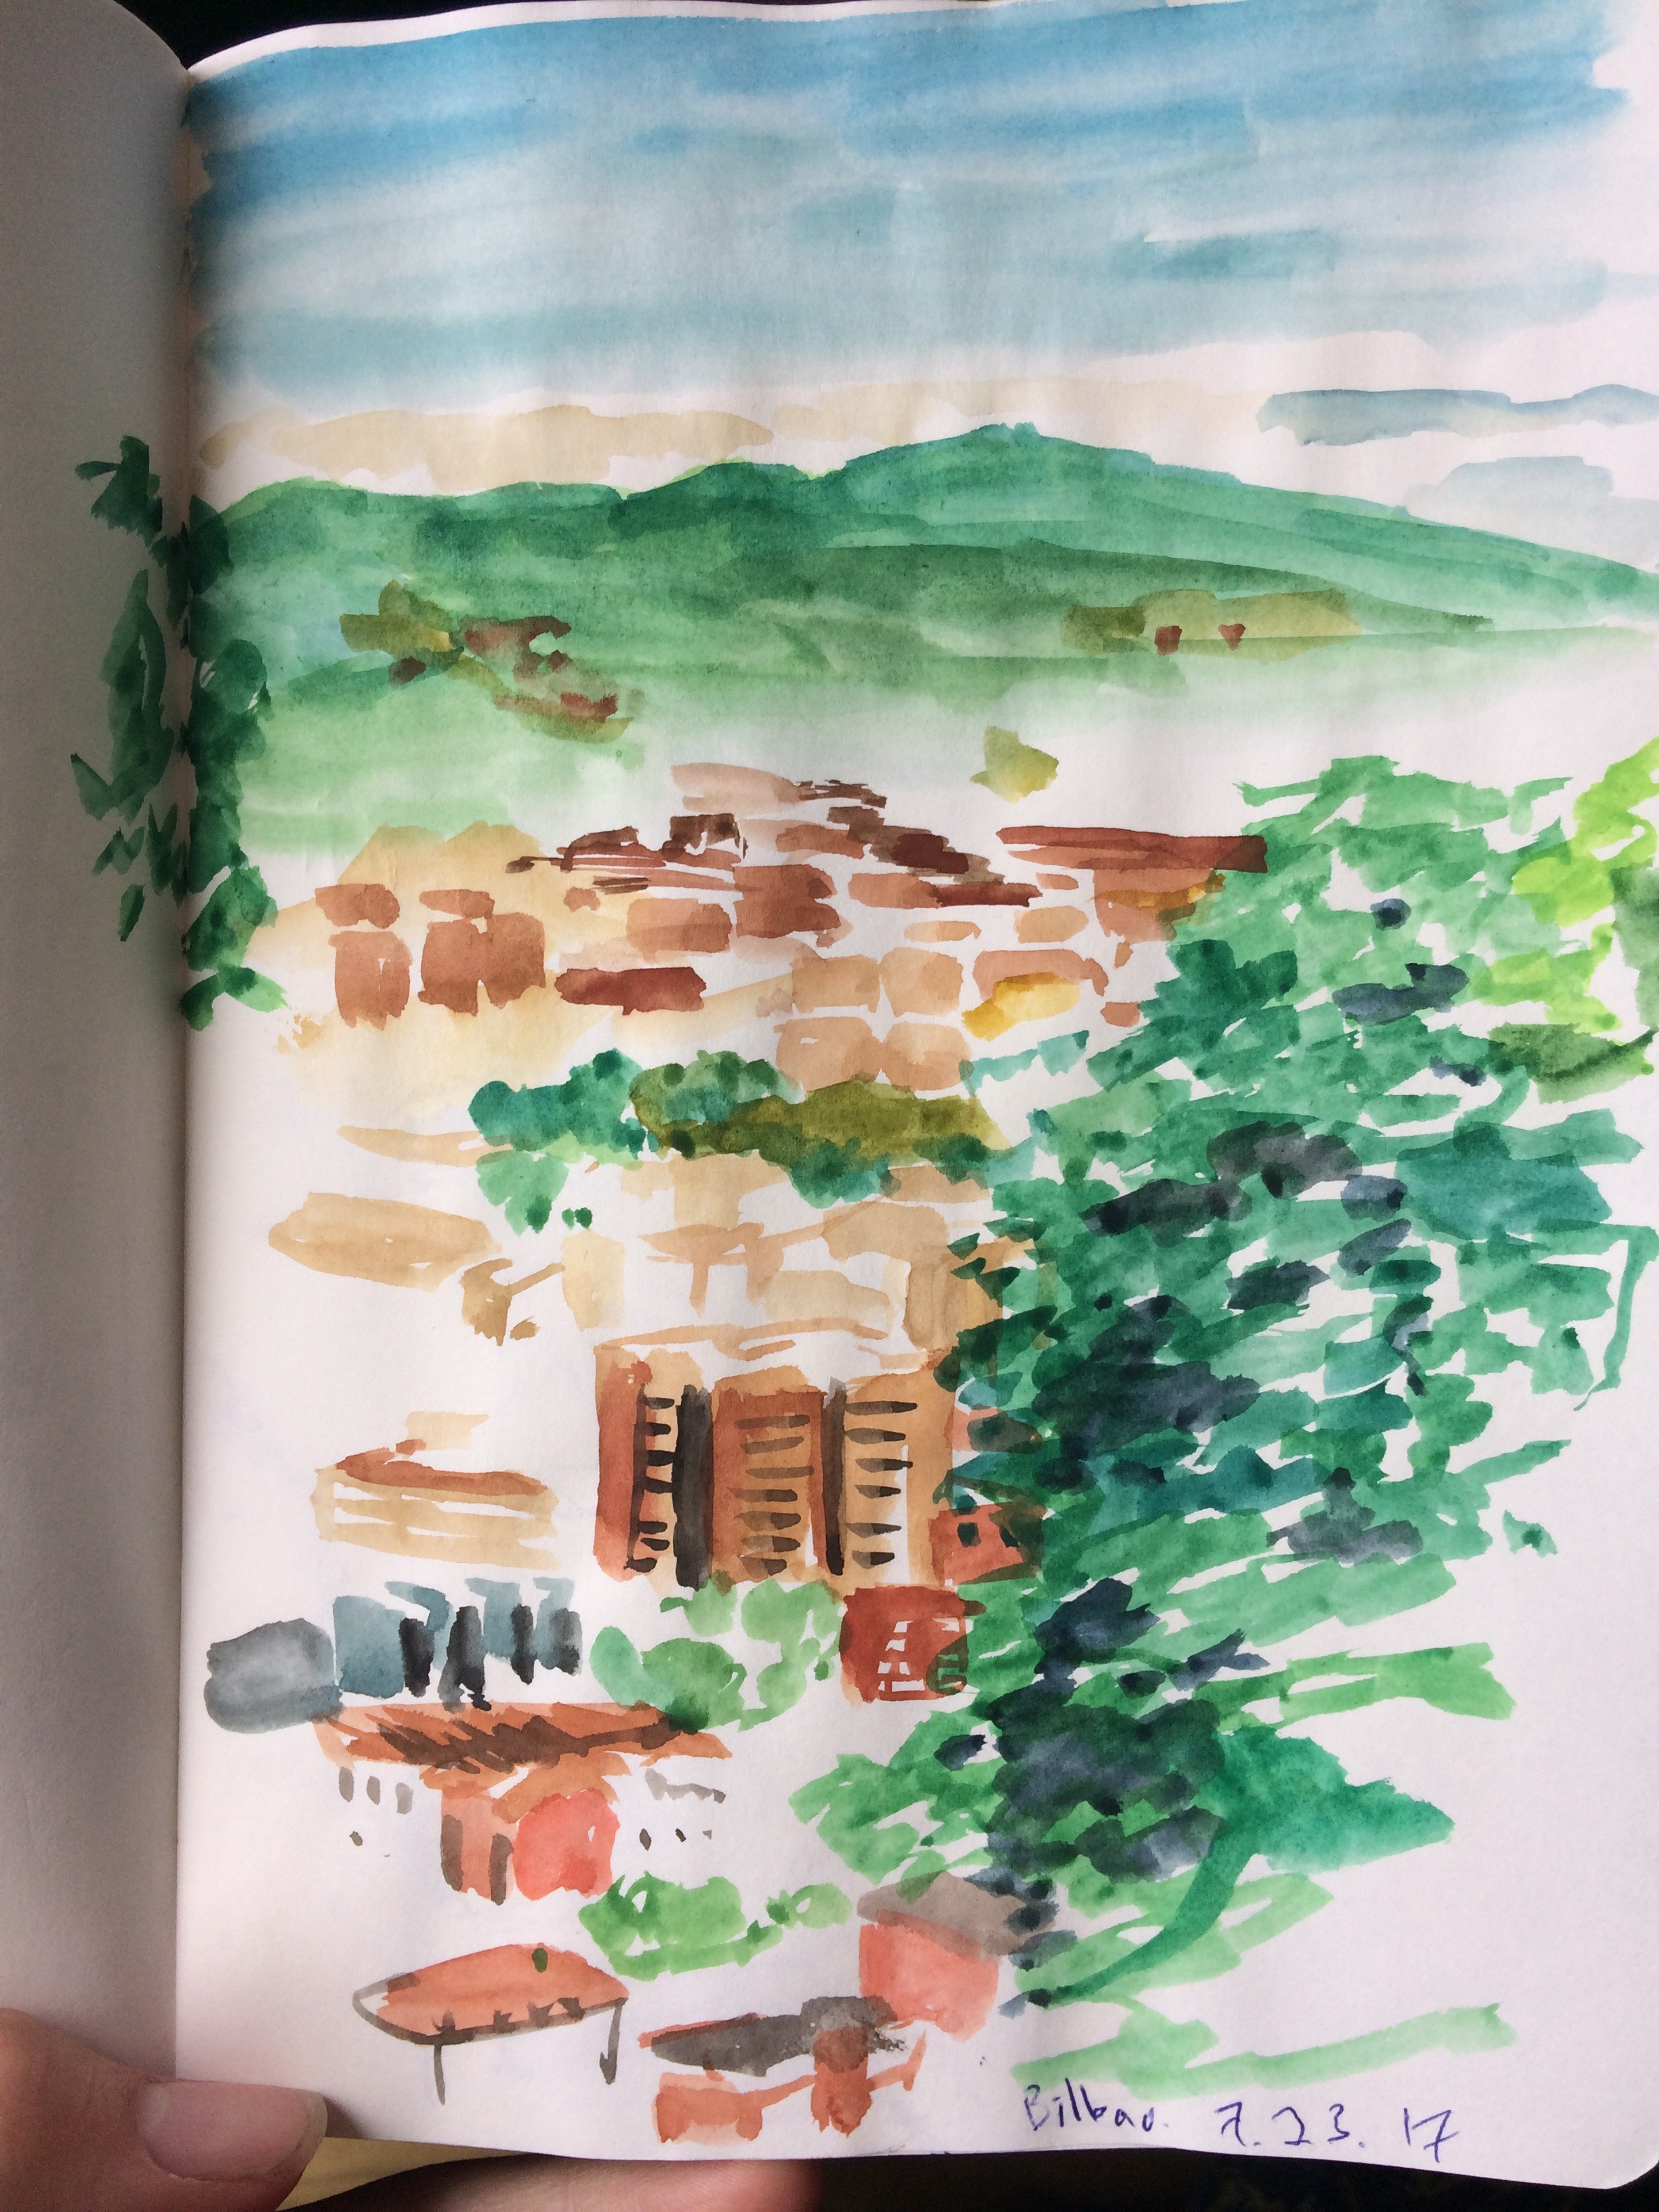 My sketch of Bilbao that evening when I heard important advice.